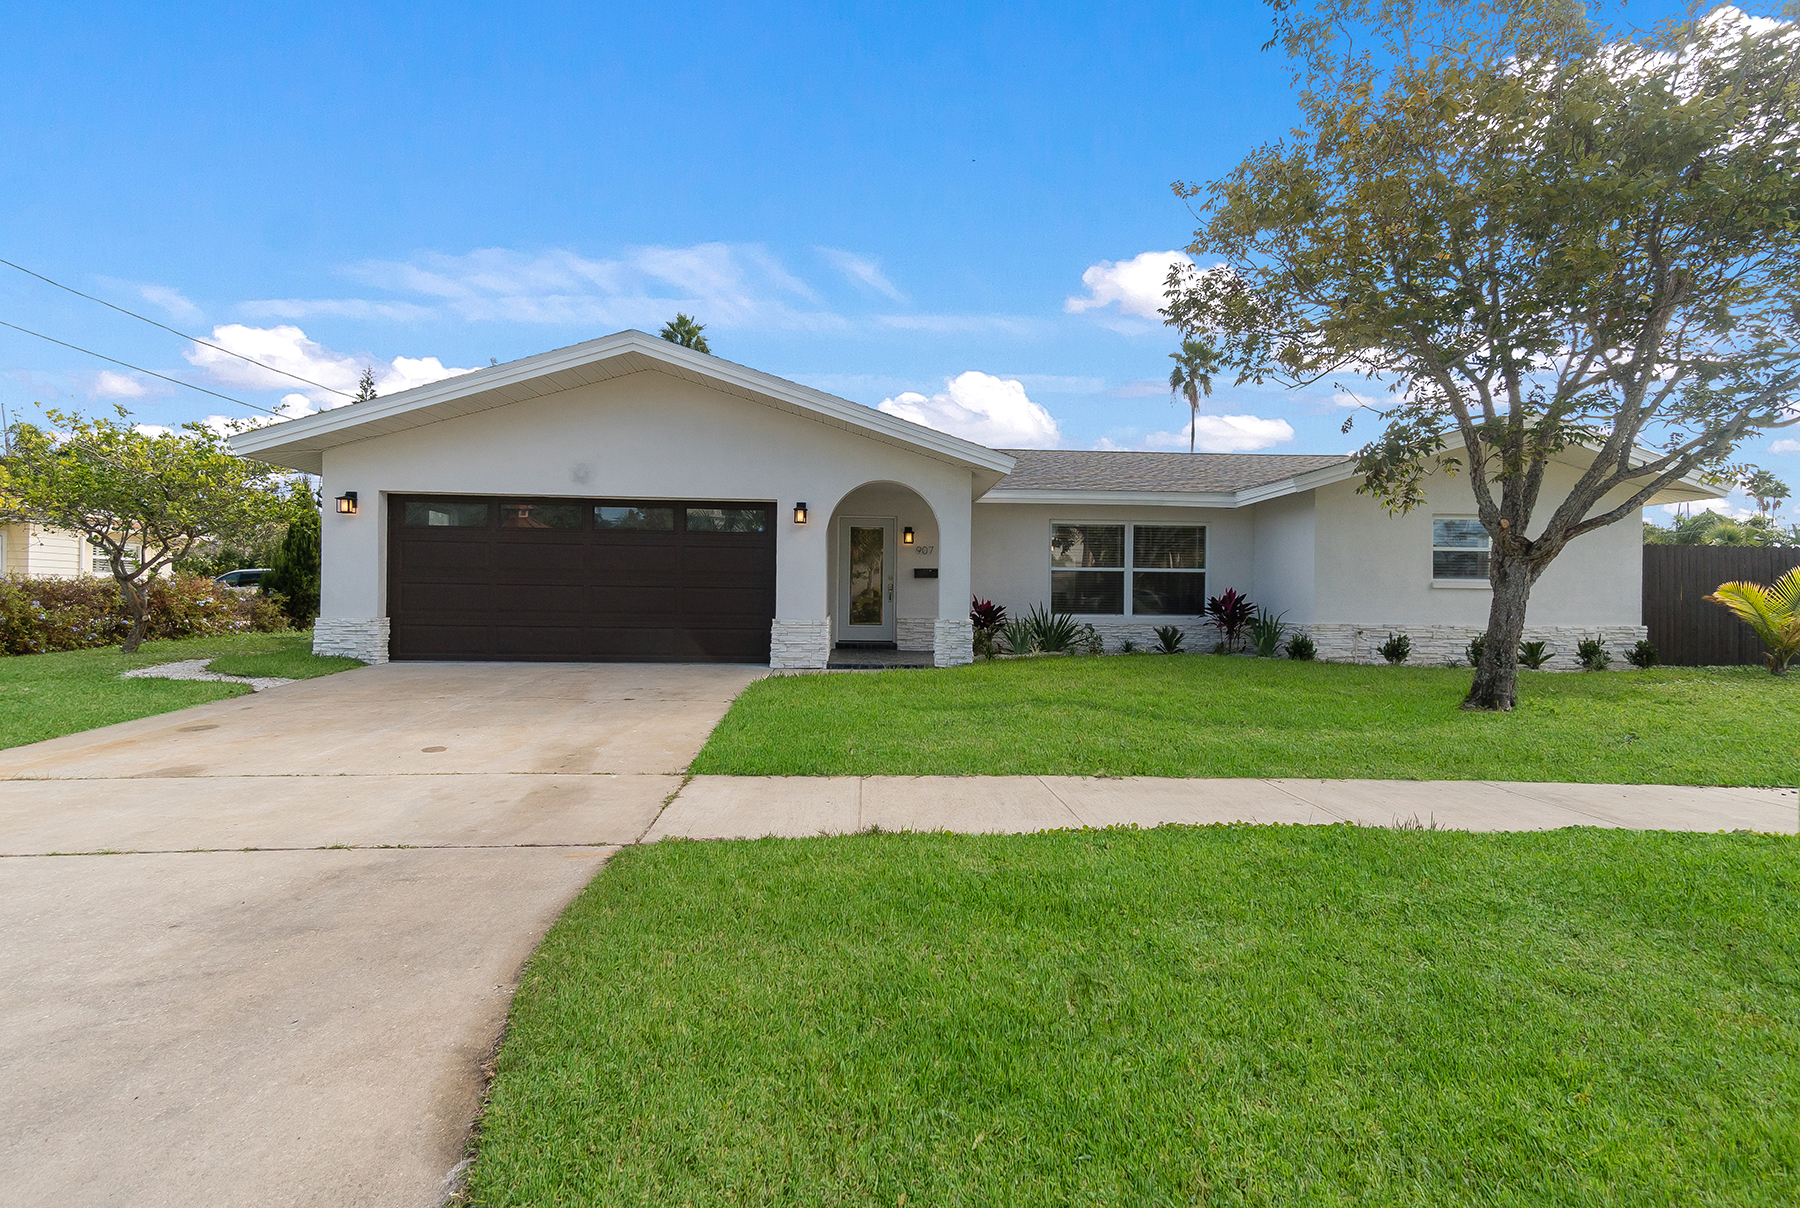 Single Family Home for Sale at CLEARWATER 907 Lantana Ave Clearwater Beach, Florida, 33767 United States